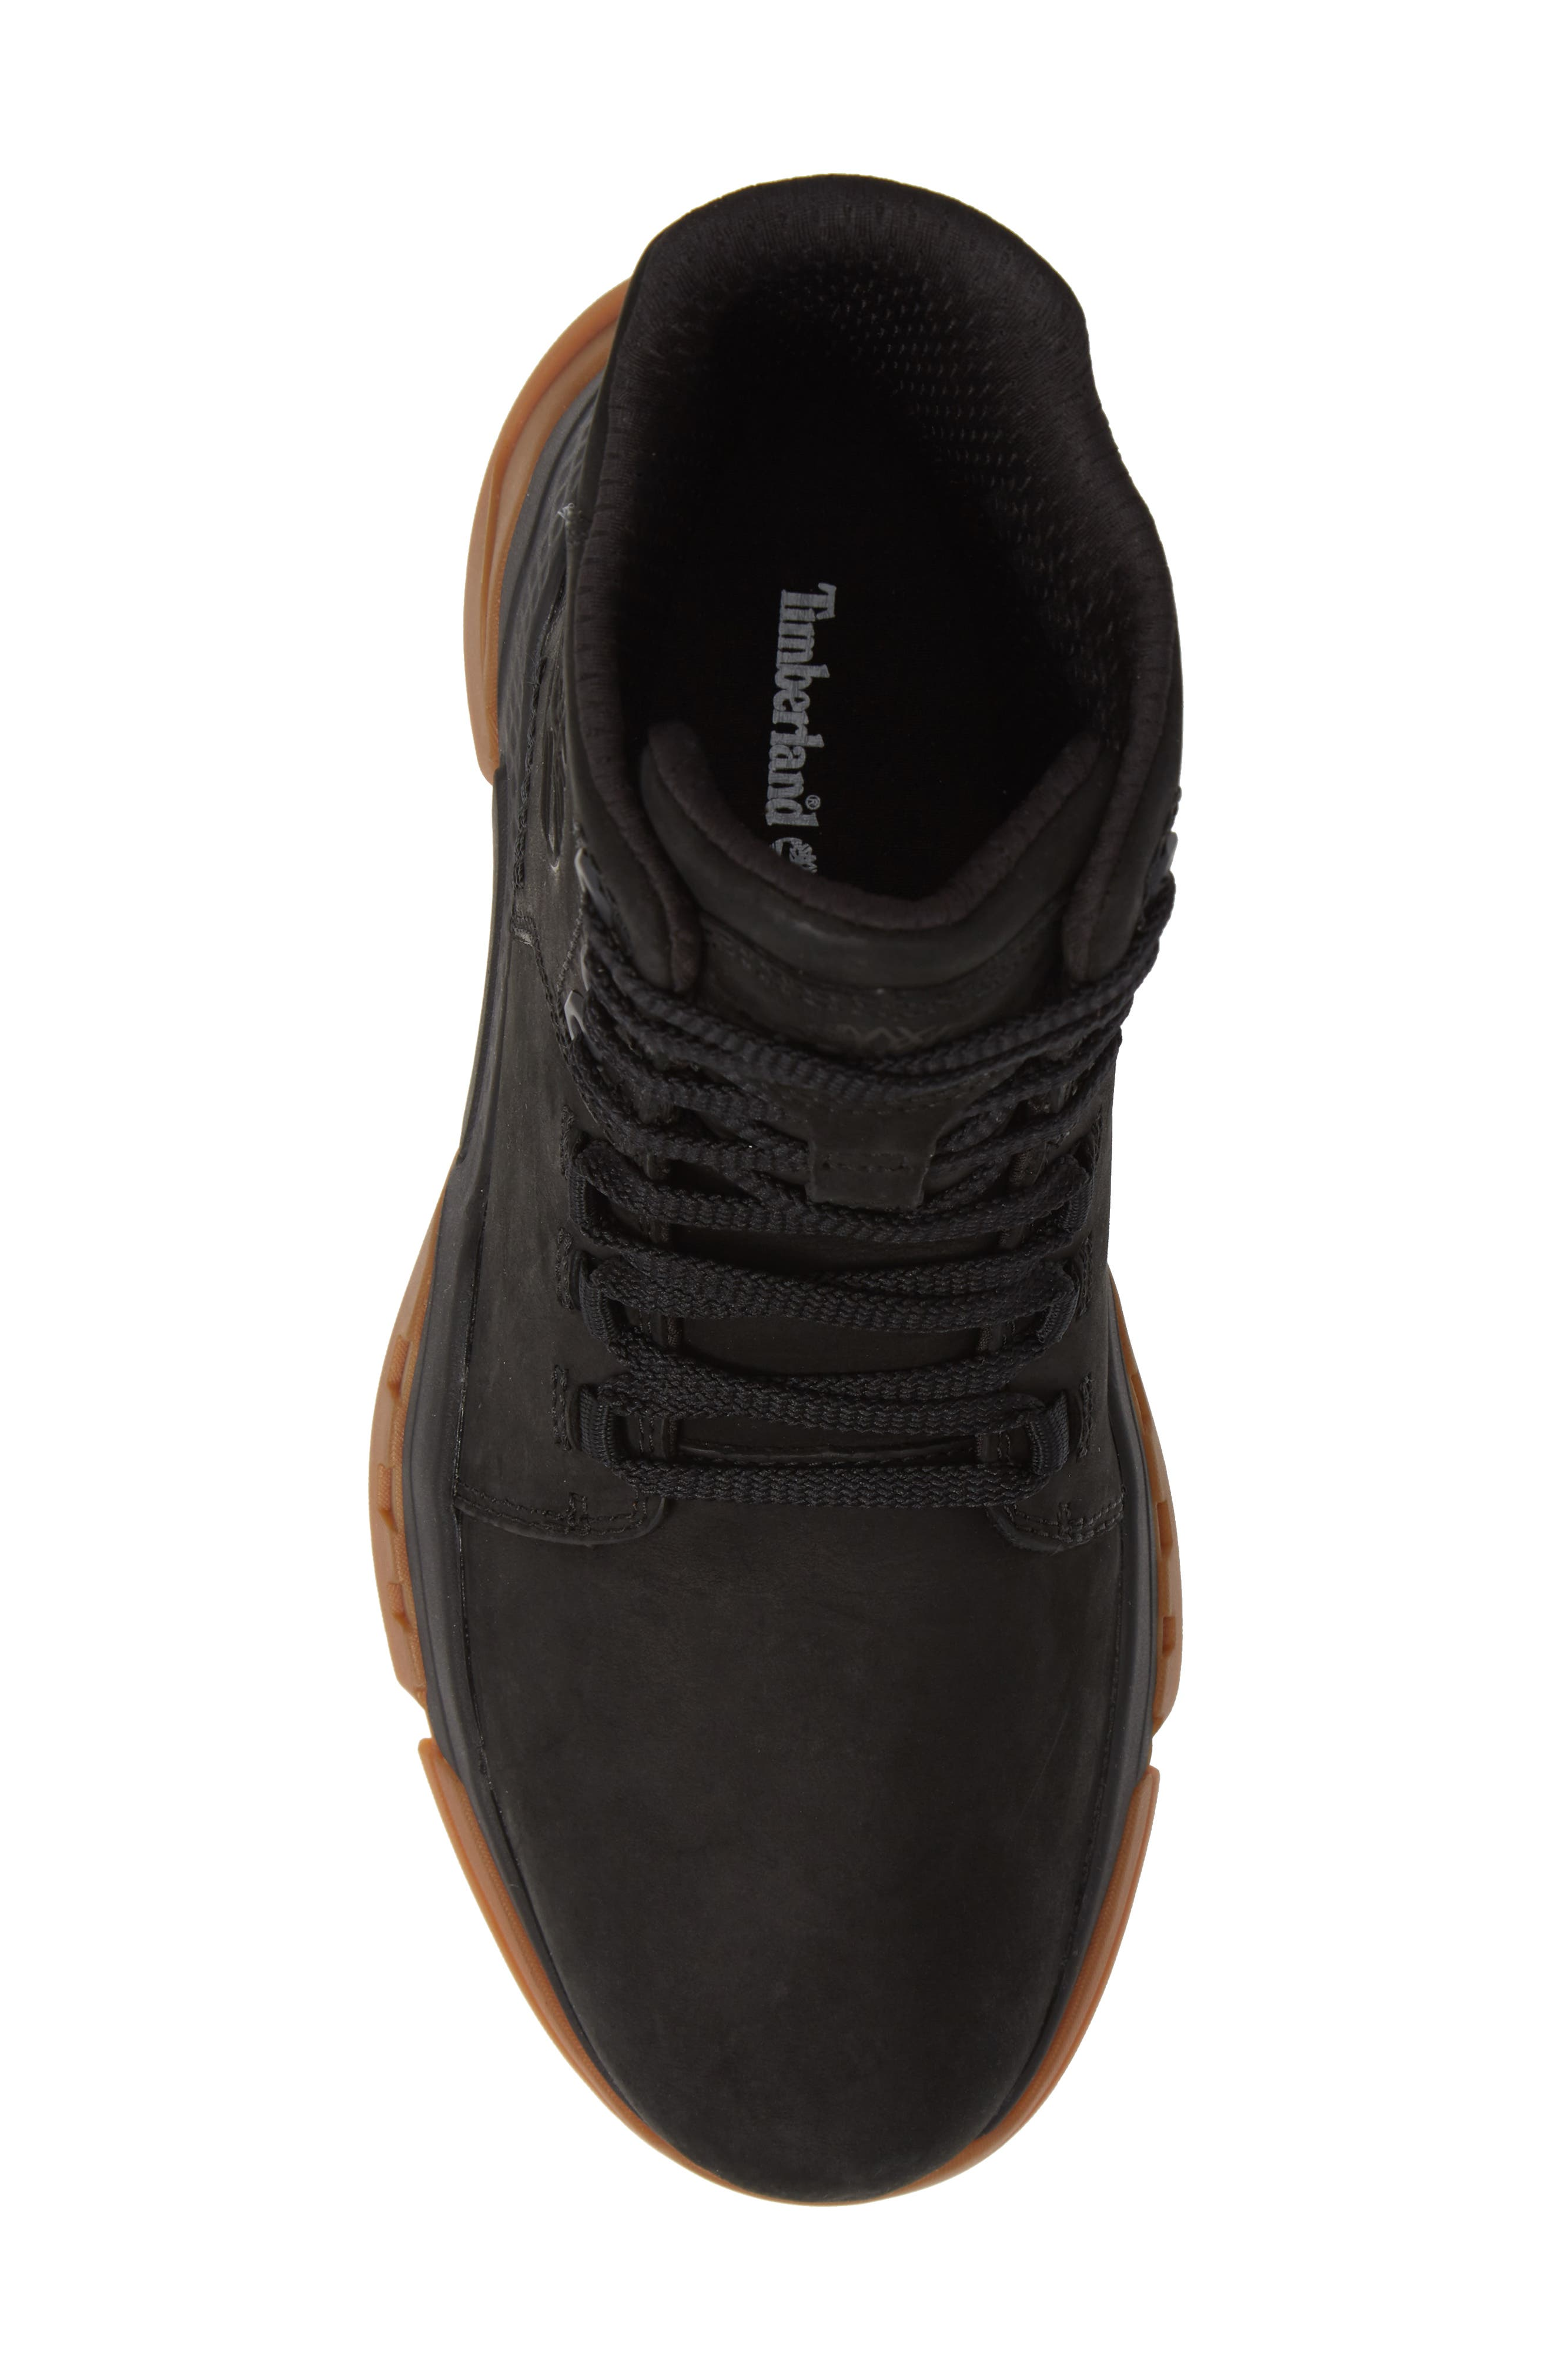 TIMBERLAND, City Force Reveal Plain Toe Boot, Alternate thumbnail 5, color, BLACK LEATHER/ NEOPRENE